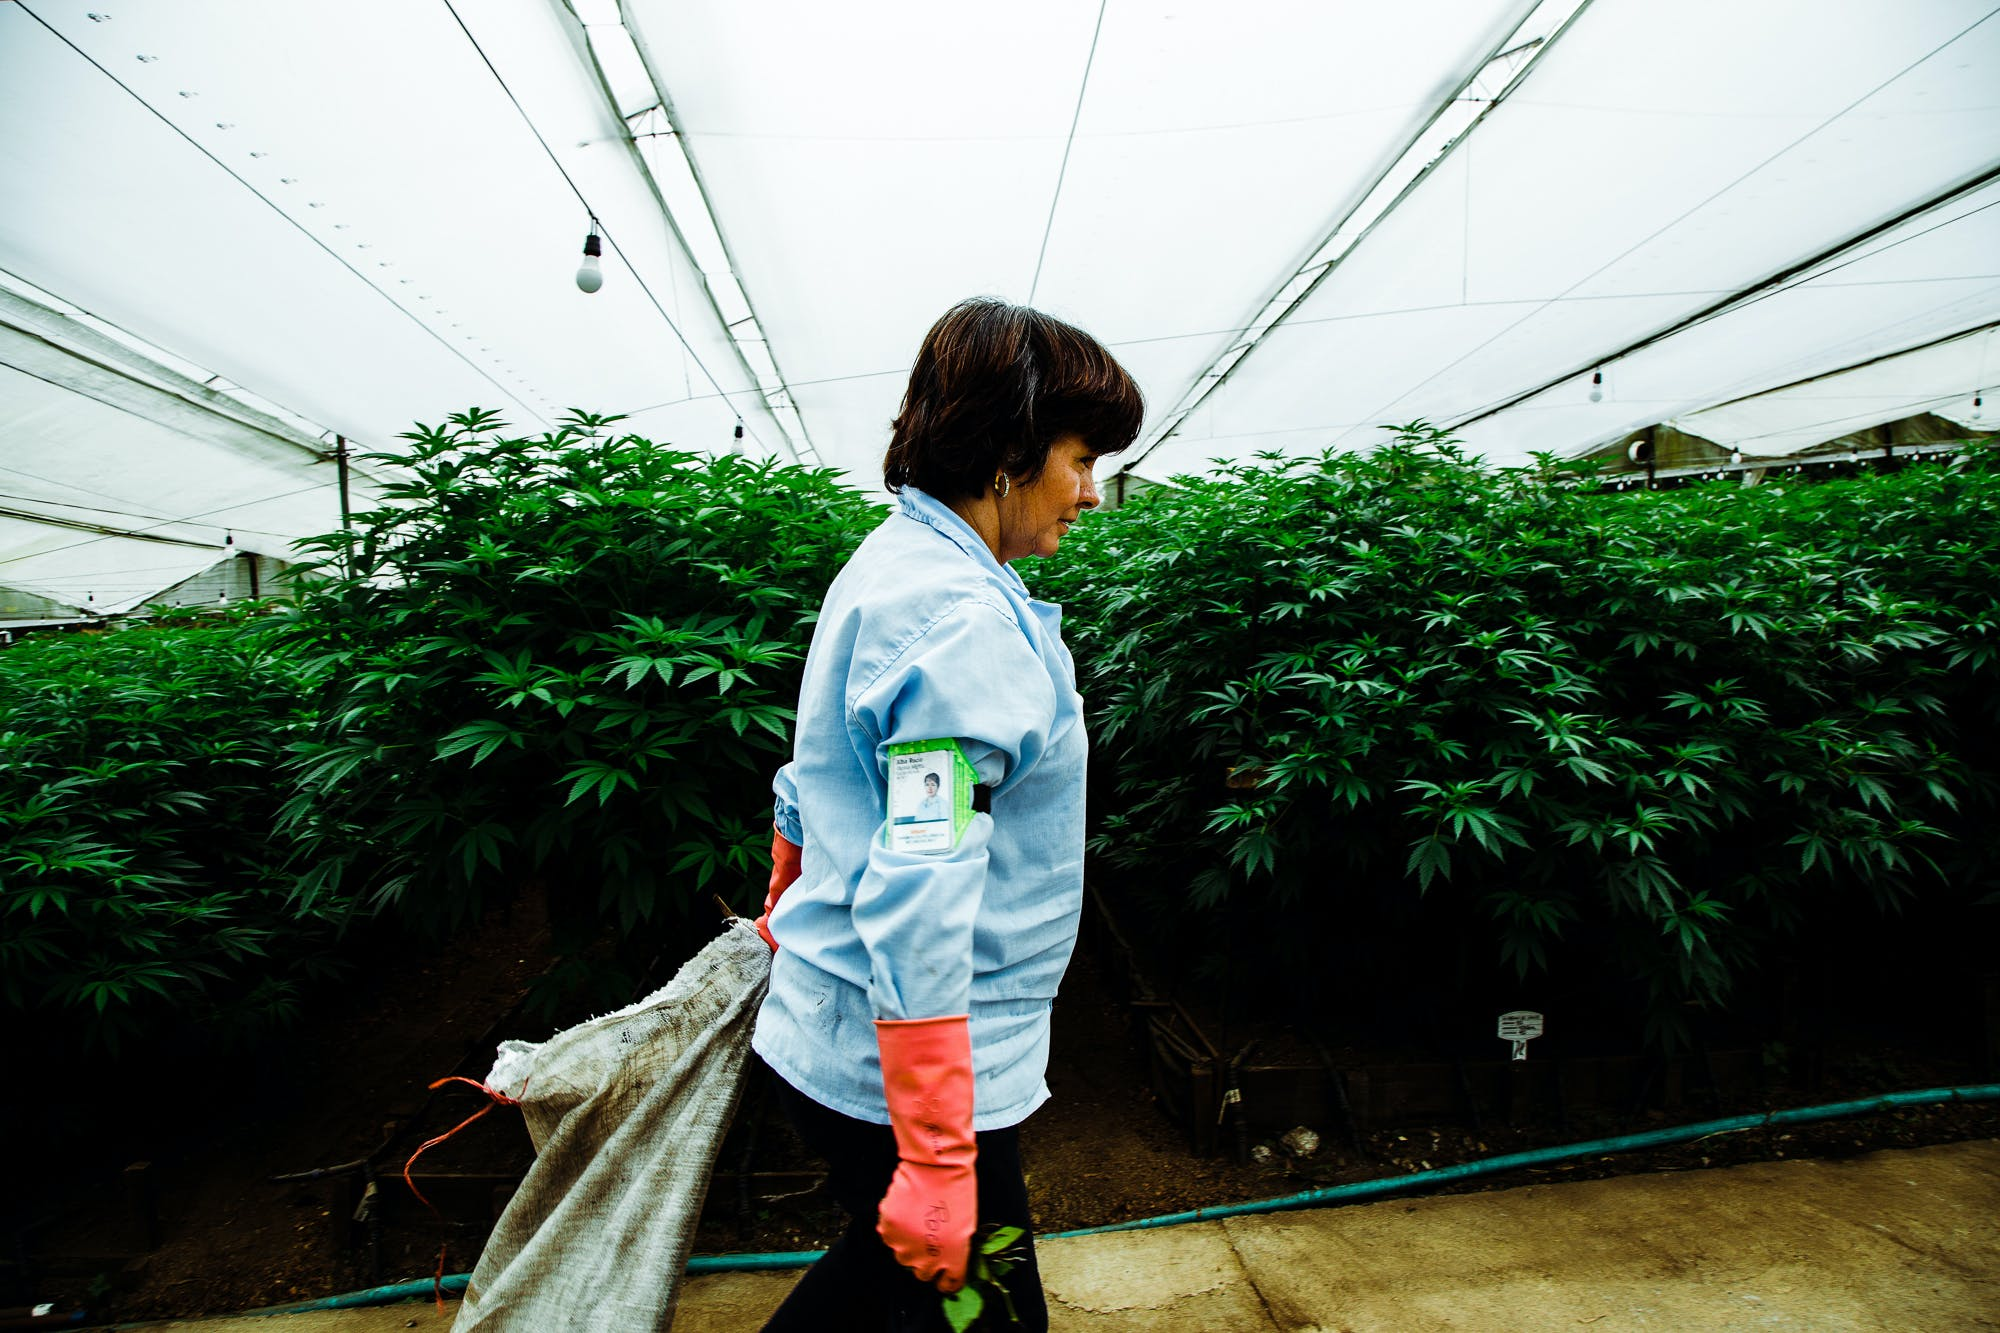 Pharmacielo could become a leader in the global medical cannabis market 8 Cannabis is Legal in Vermont, But Gifting it Isnt